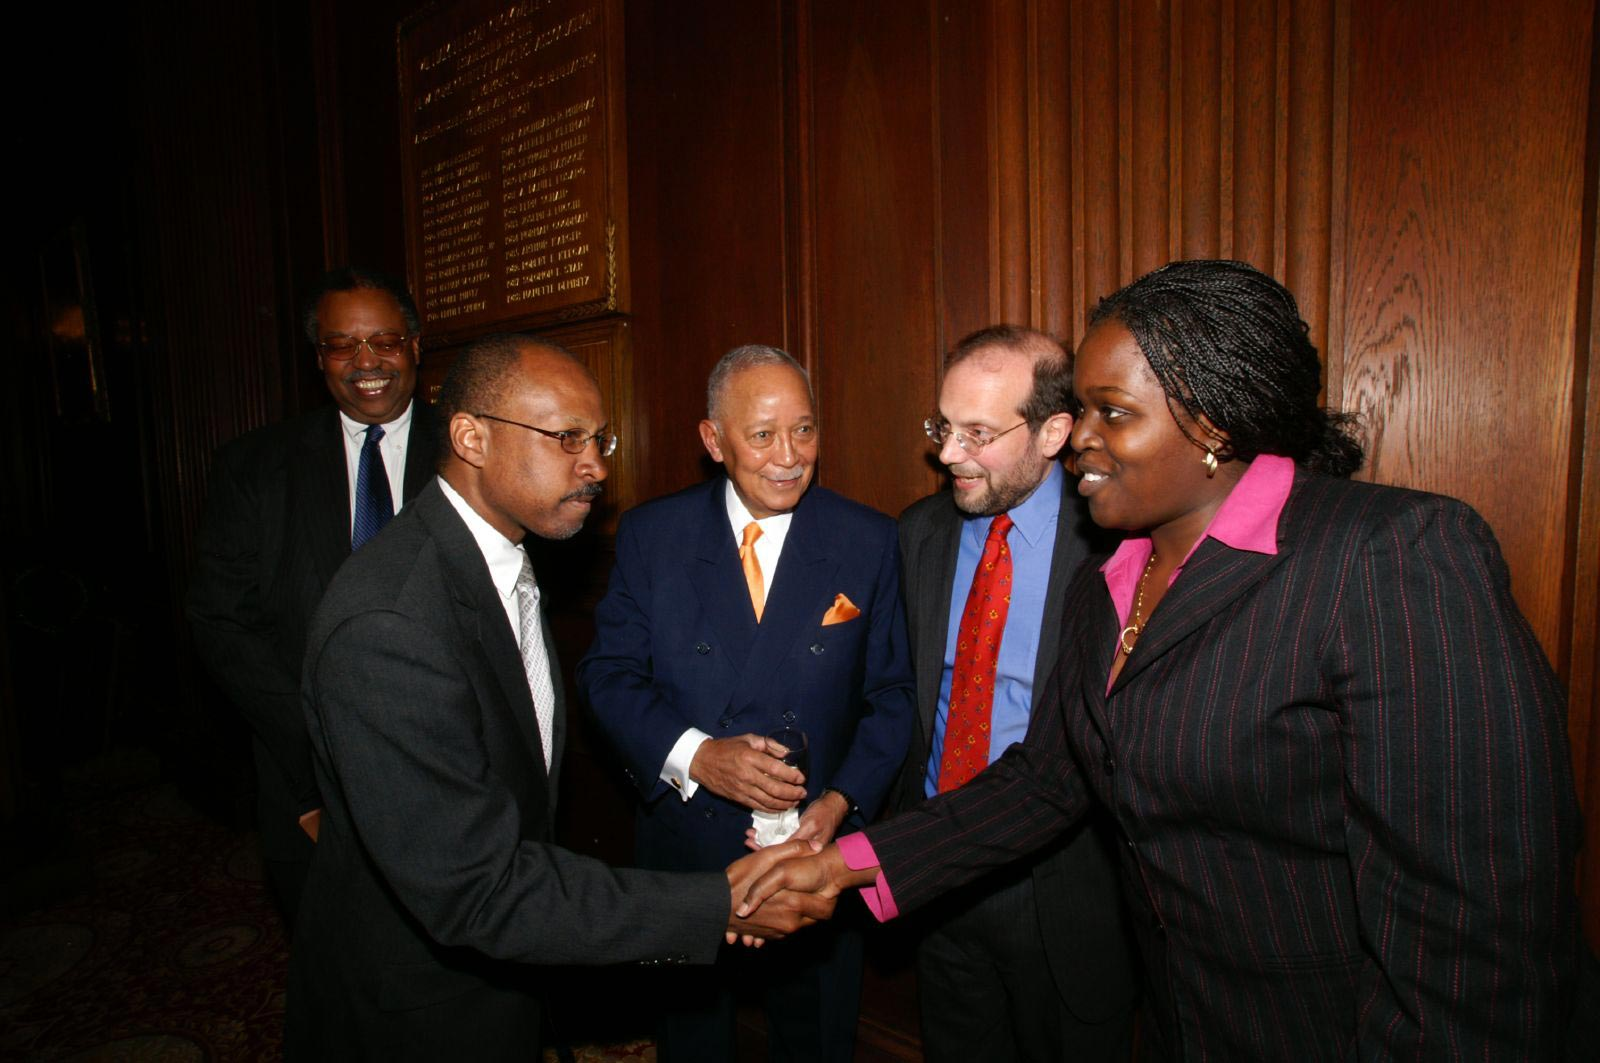 Black History Month event at The Legal Aid Society